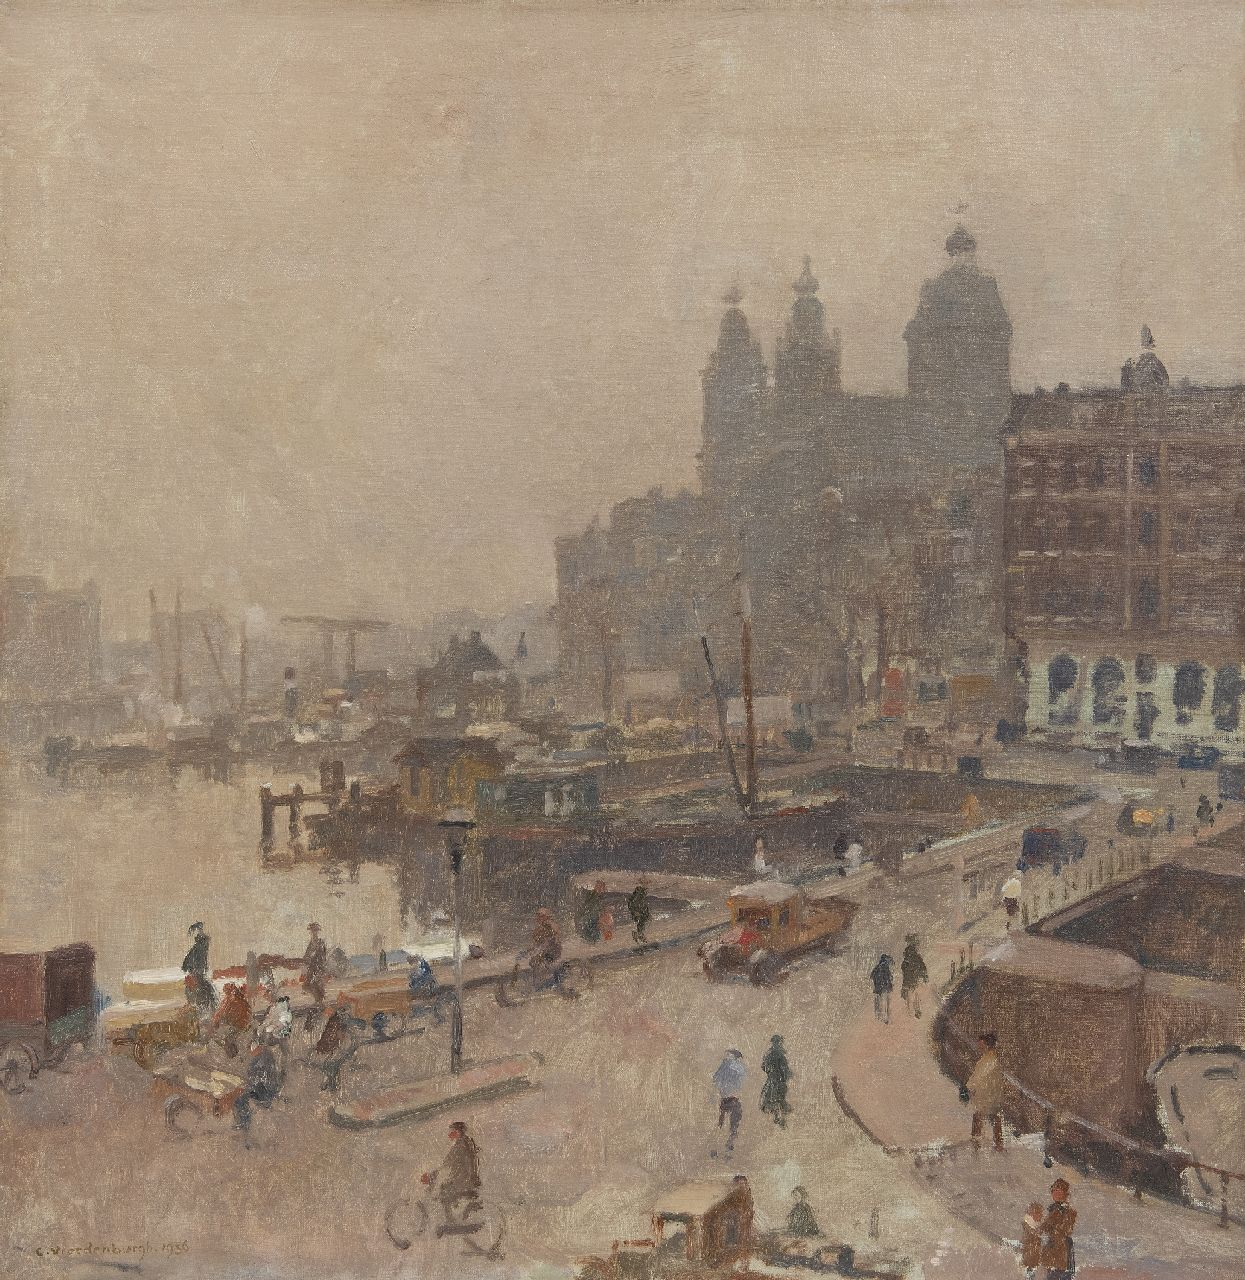 Vreedenburgh C.  | Cornelis Vreedenburgh | Paintings offered for sale | View of Amsterdam with the St. Nicolaas church, oil on canvas 52.3 x 50.7 cm, signed l.l. and dated 1936